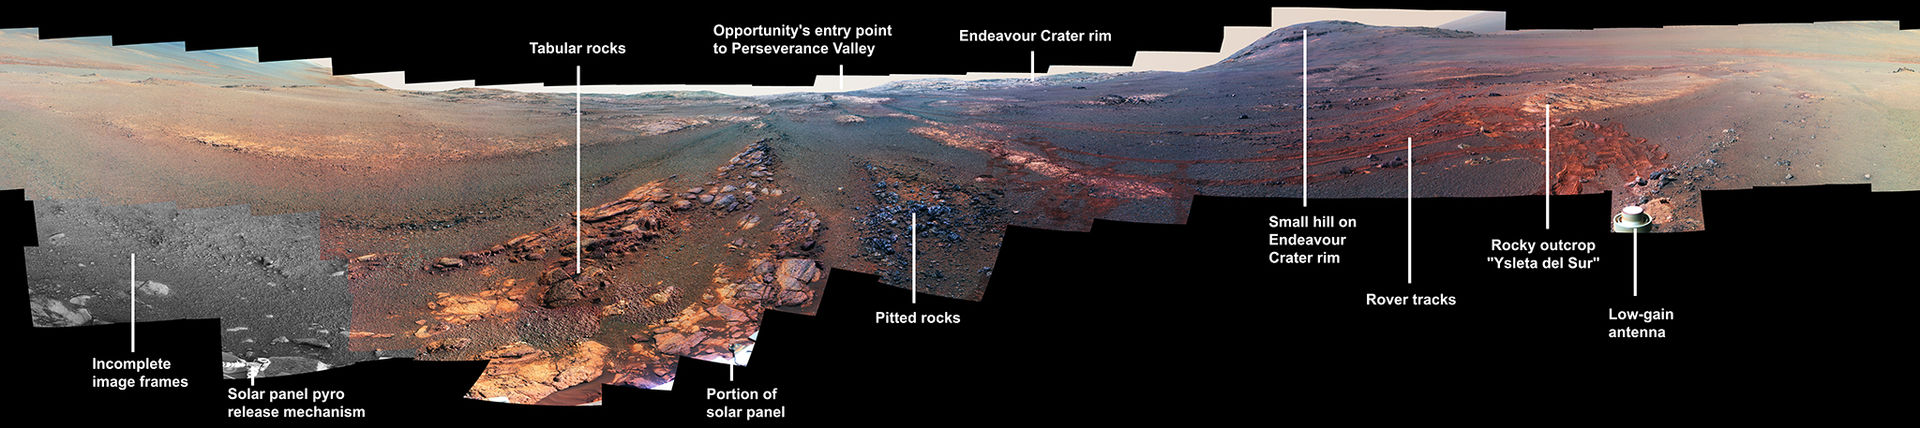 opportunity-nasa-ultima-foto.jpg